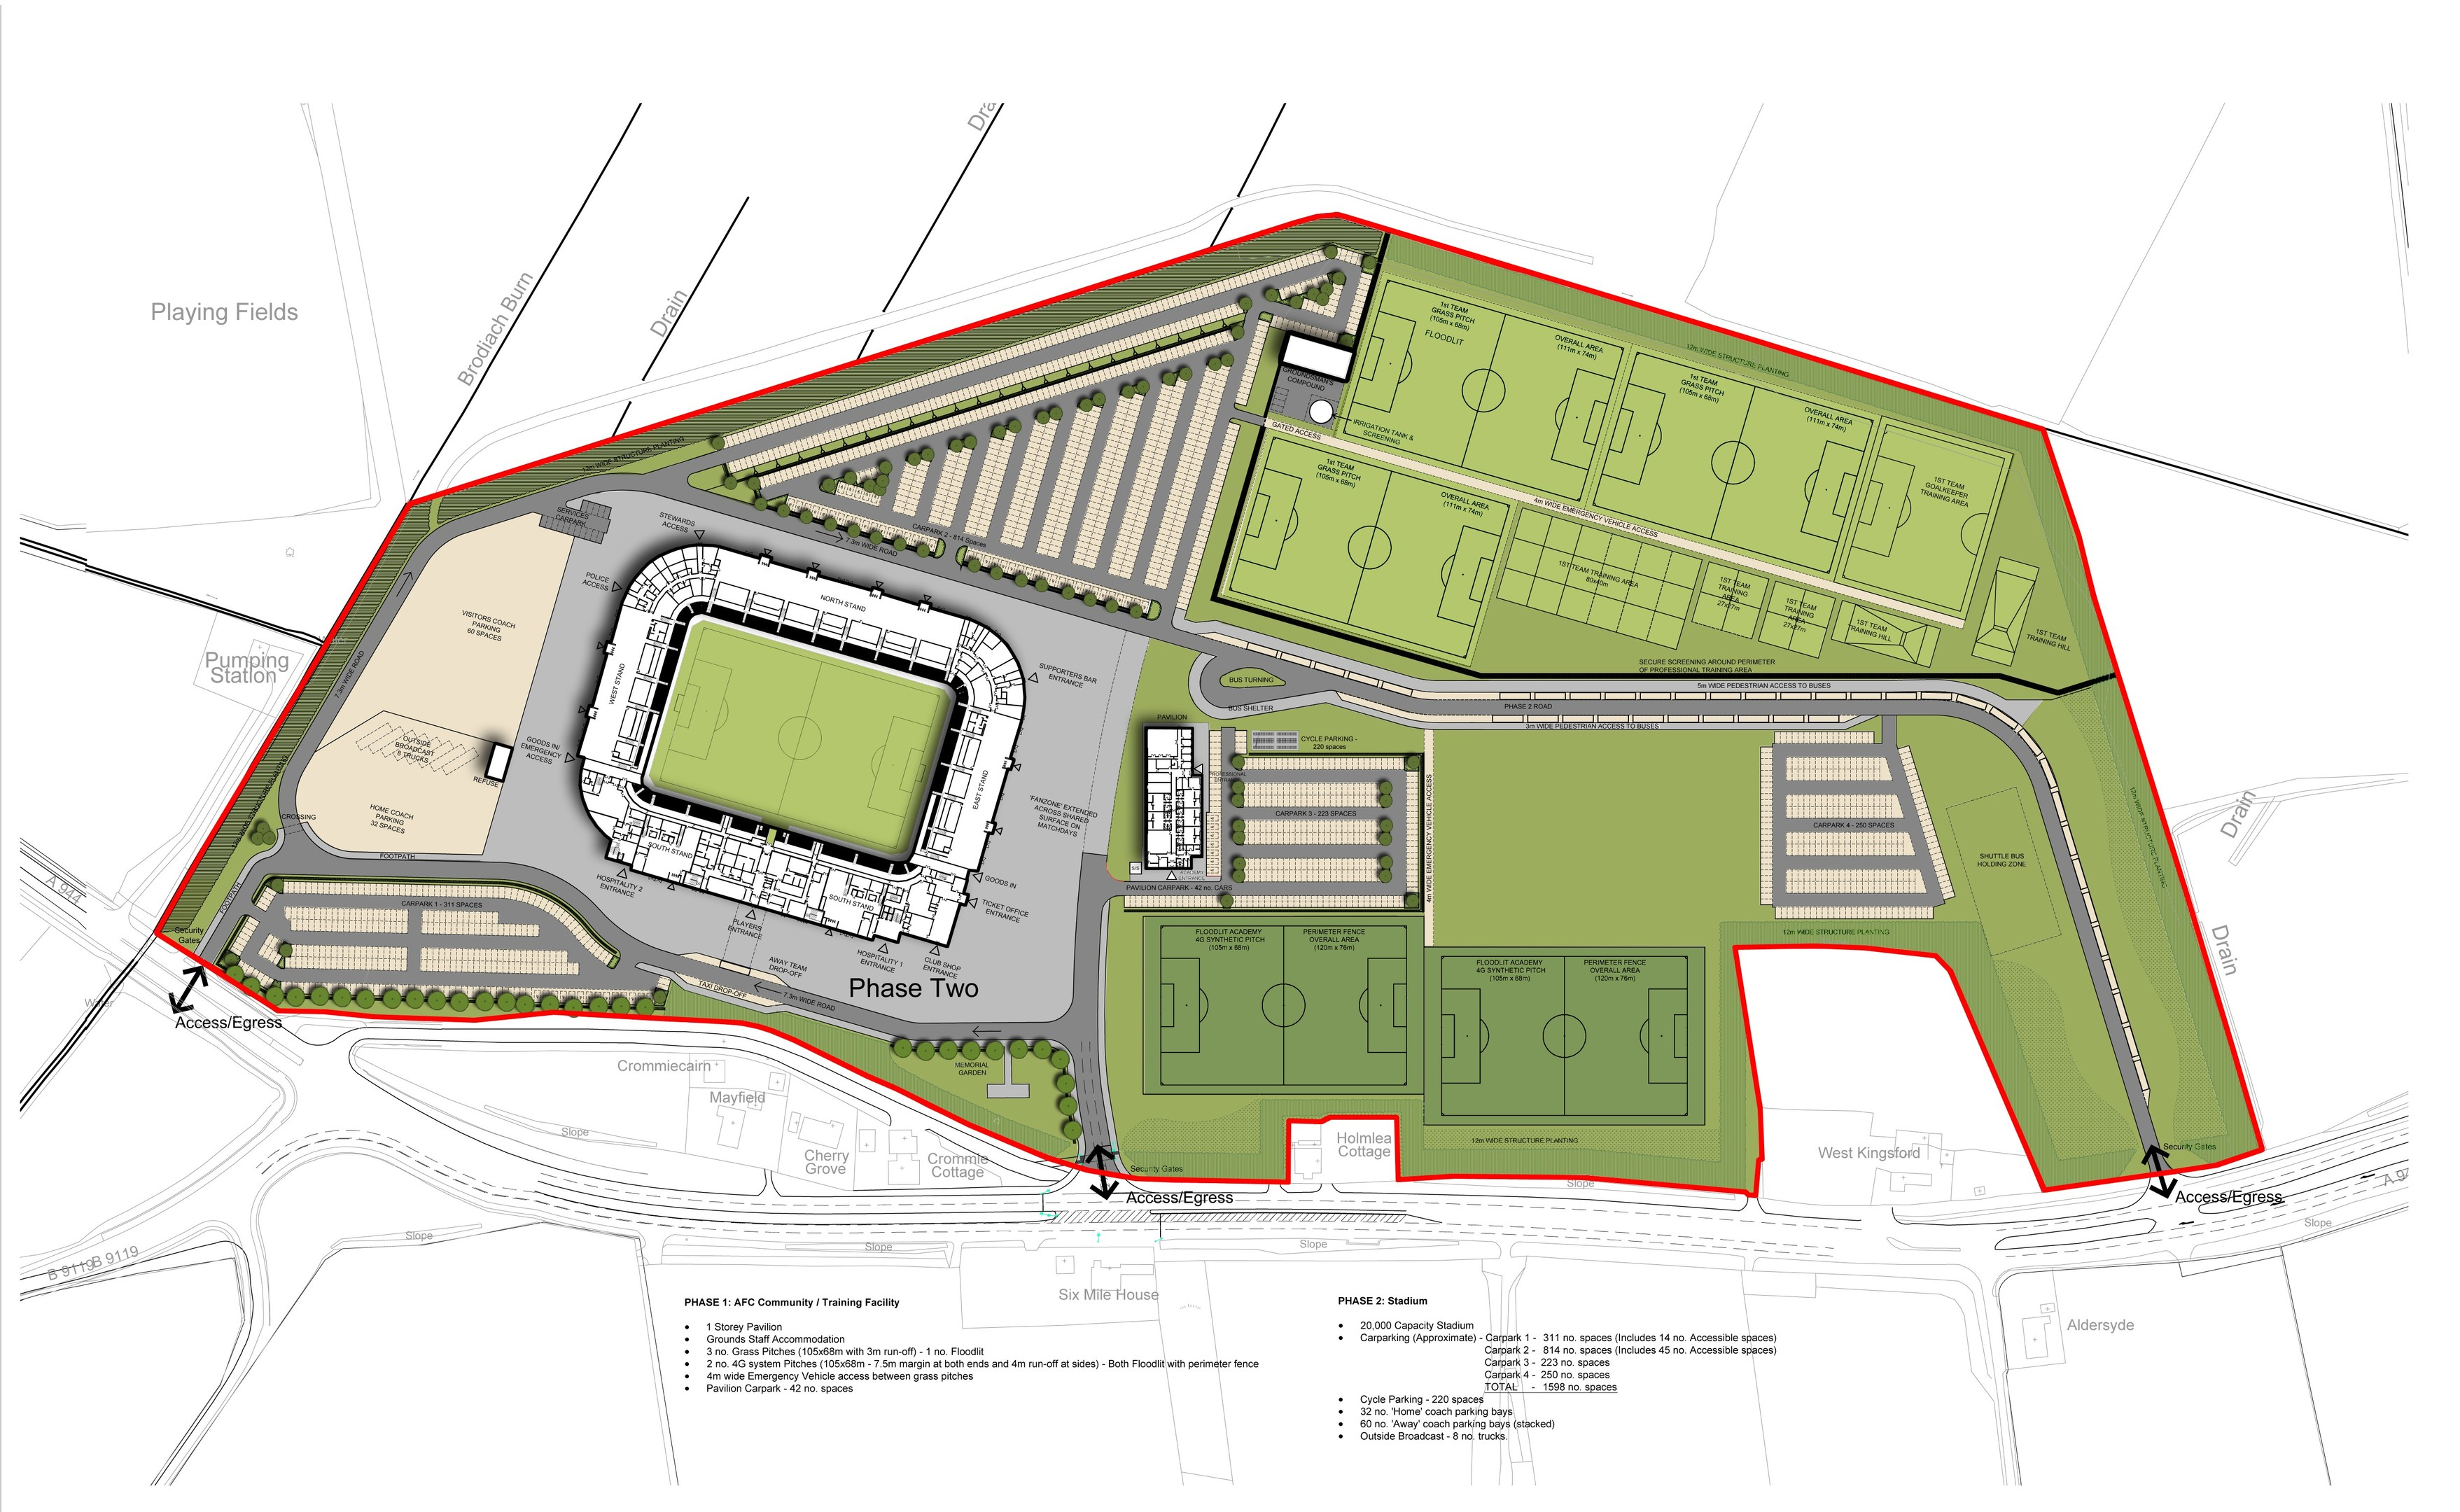 A fanzone, supporters bar and memorial garden are part of the plans.